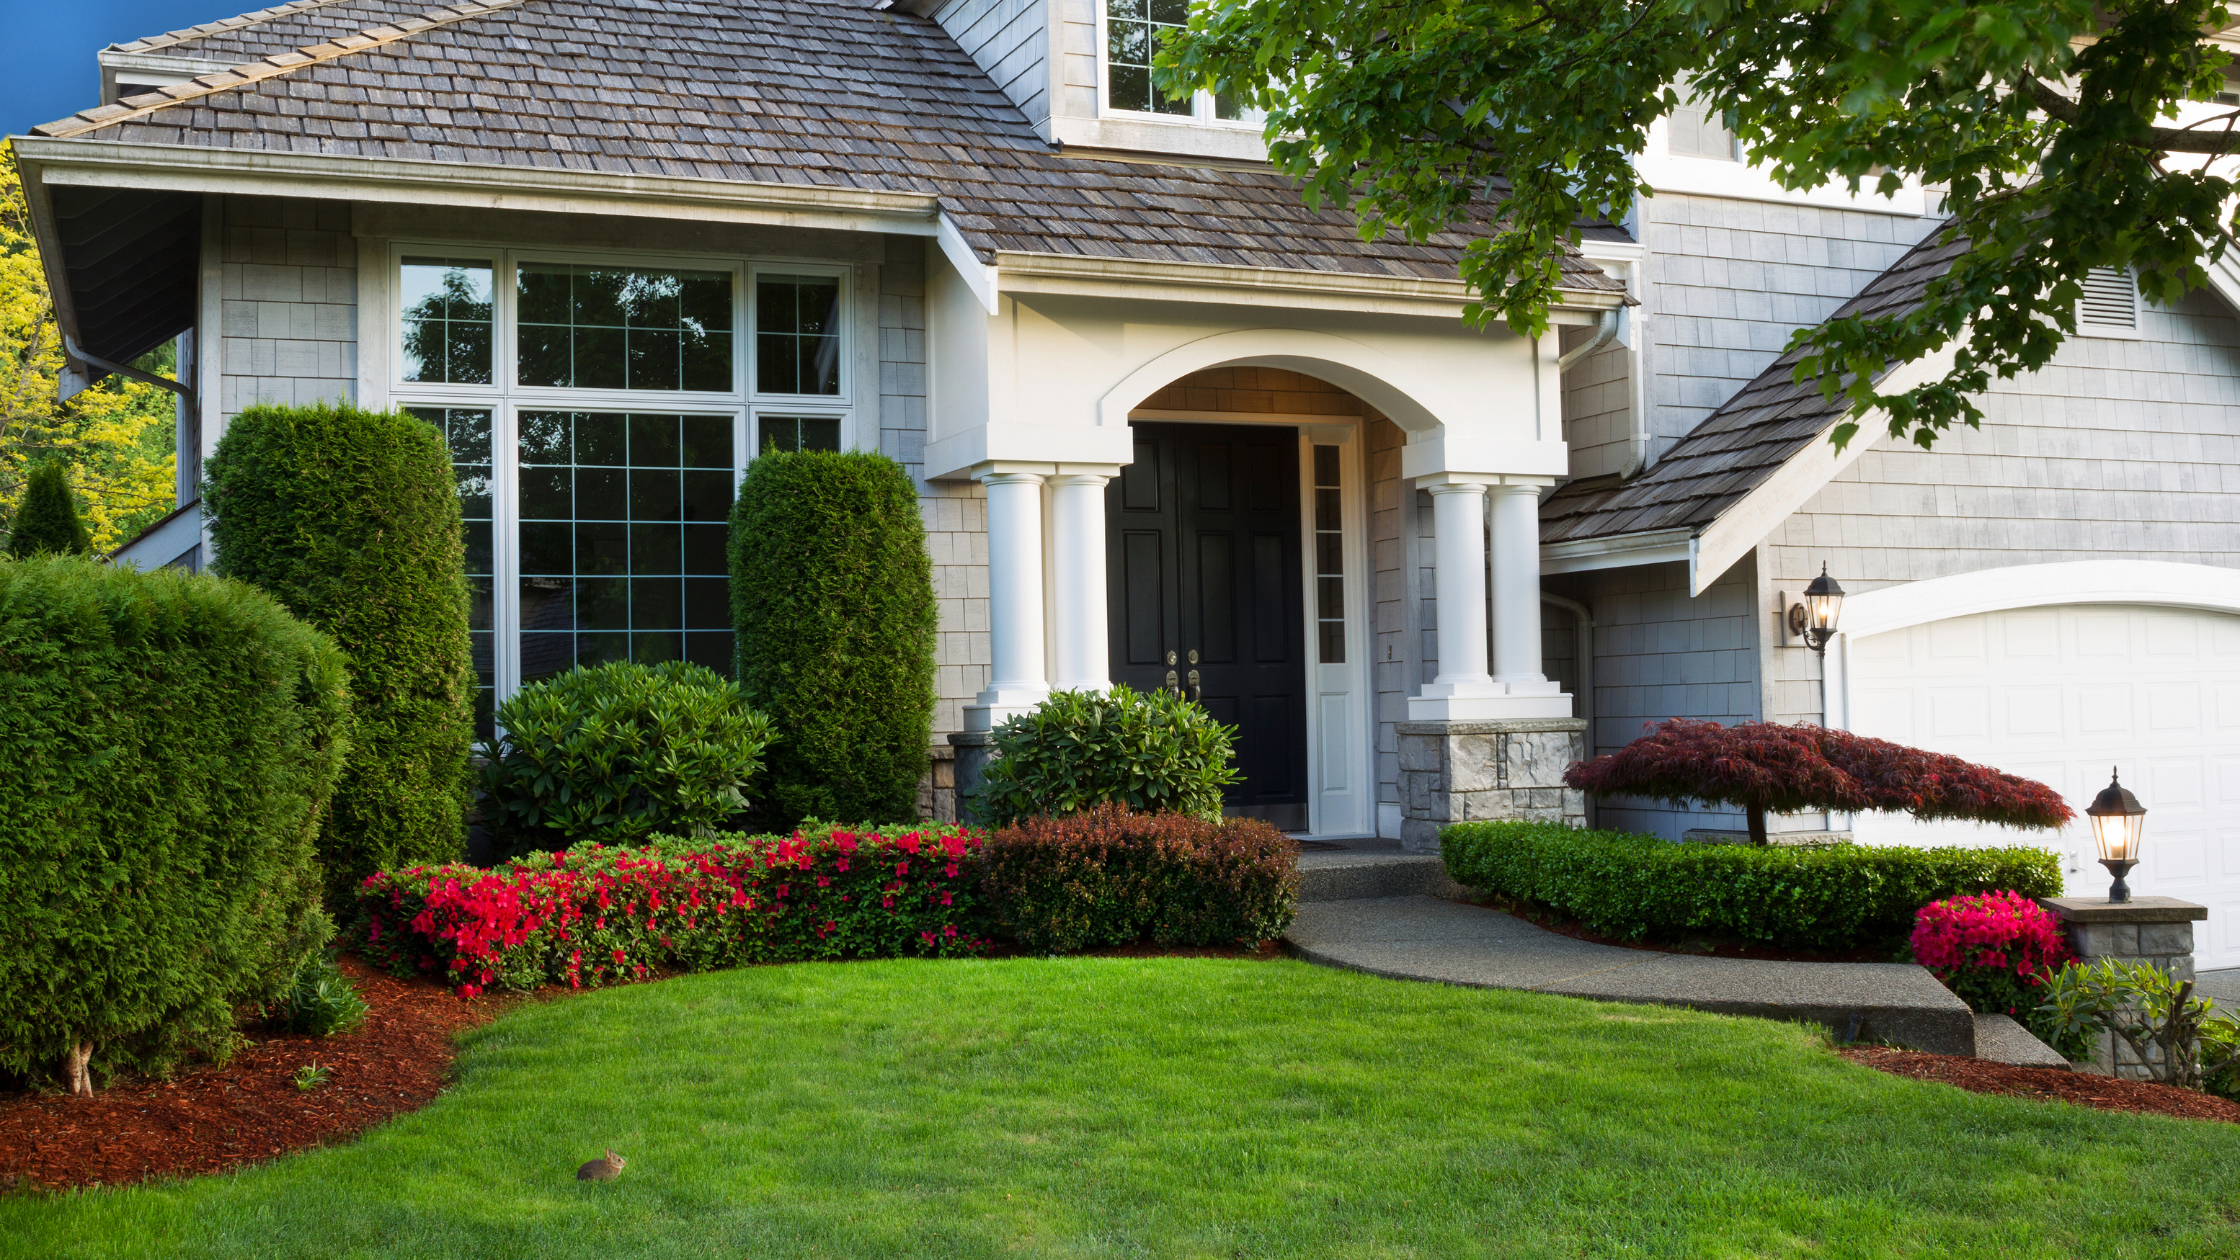 Landscaping Can Help Protect Your Foundation